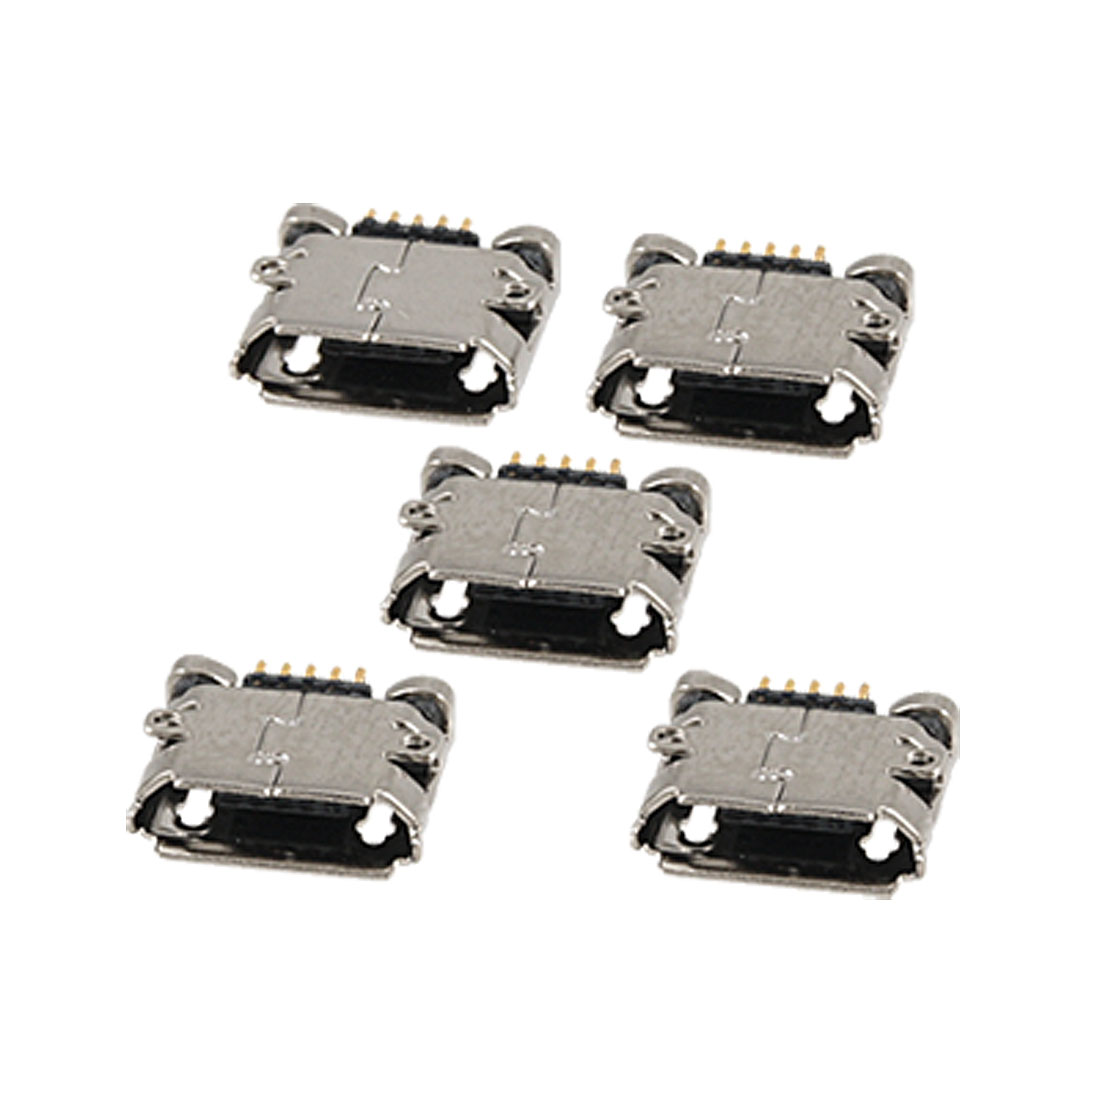 5 Pcs Charging Port Interface Connector Parts for Nokia 8600